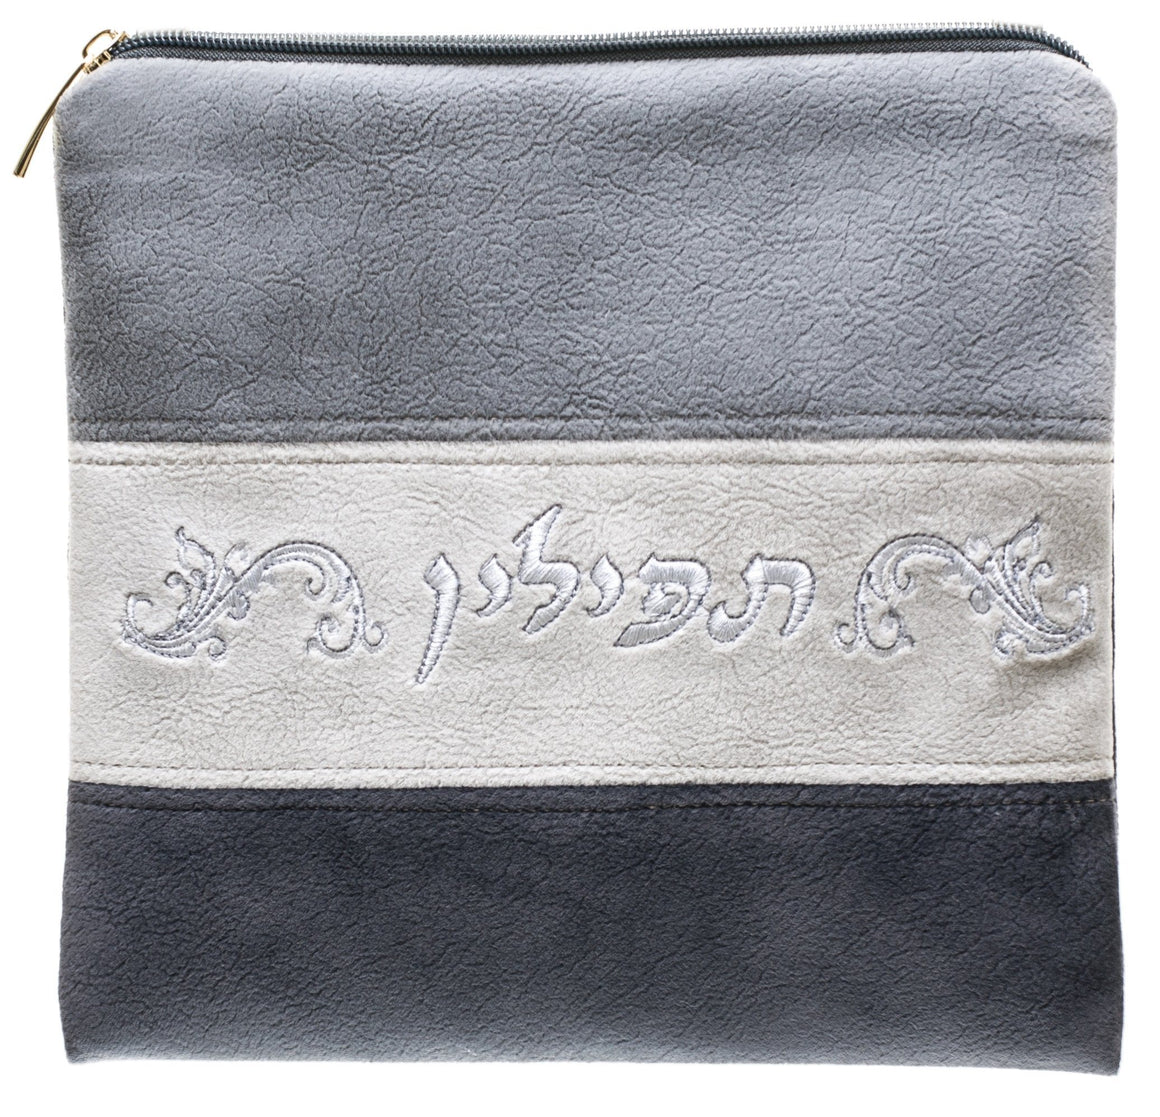 Leather Suede Grey Tefillin Bag